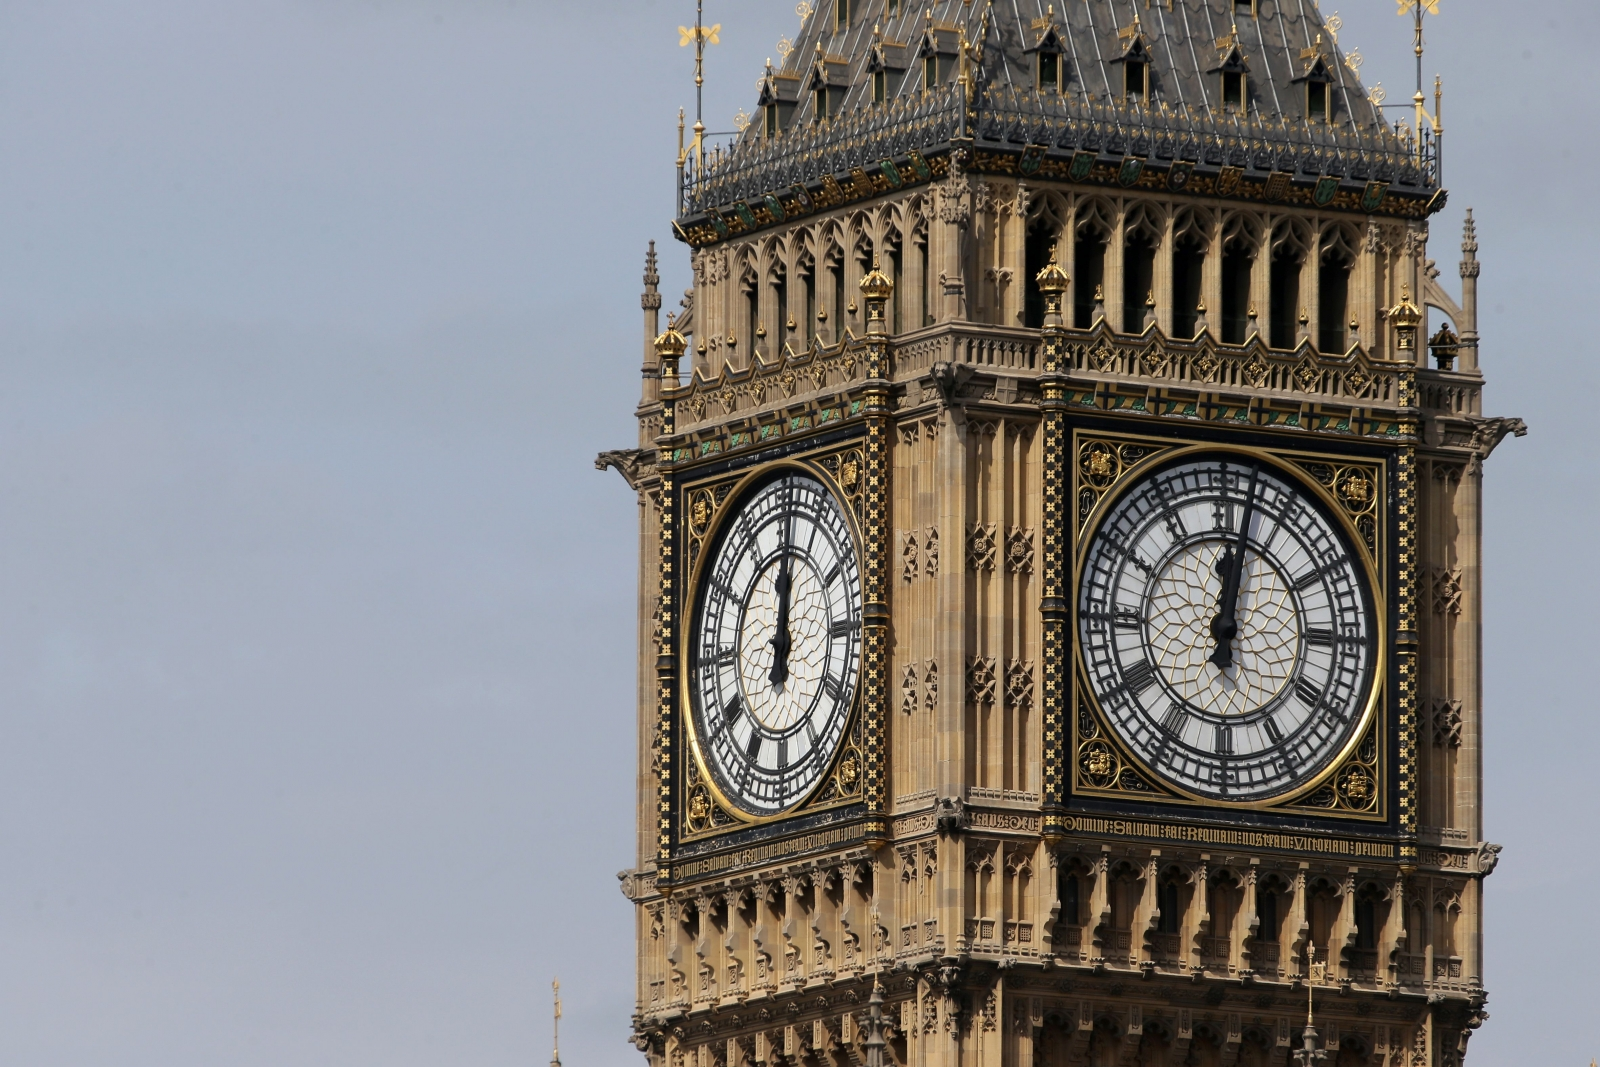 Controversy over plans for Big Ben to fall silent until 2021